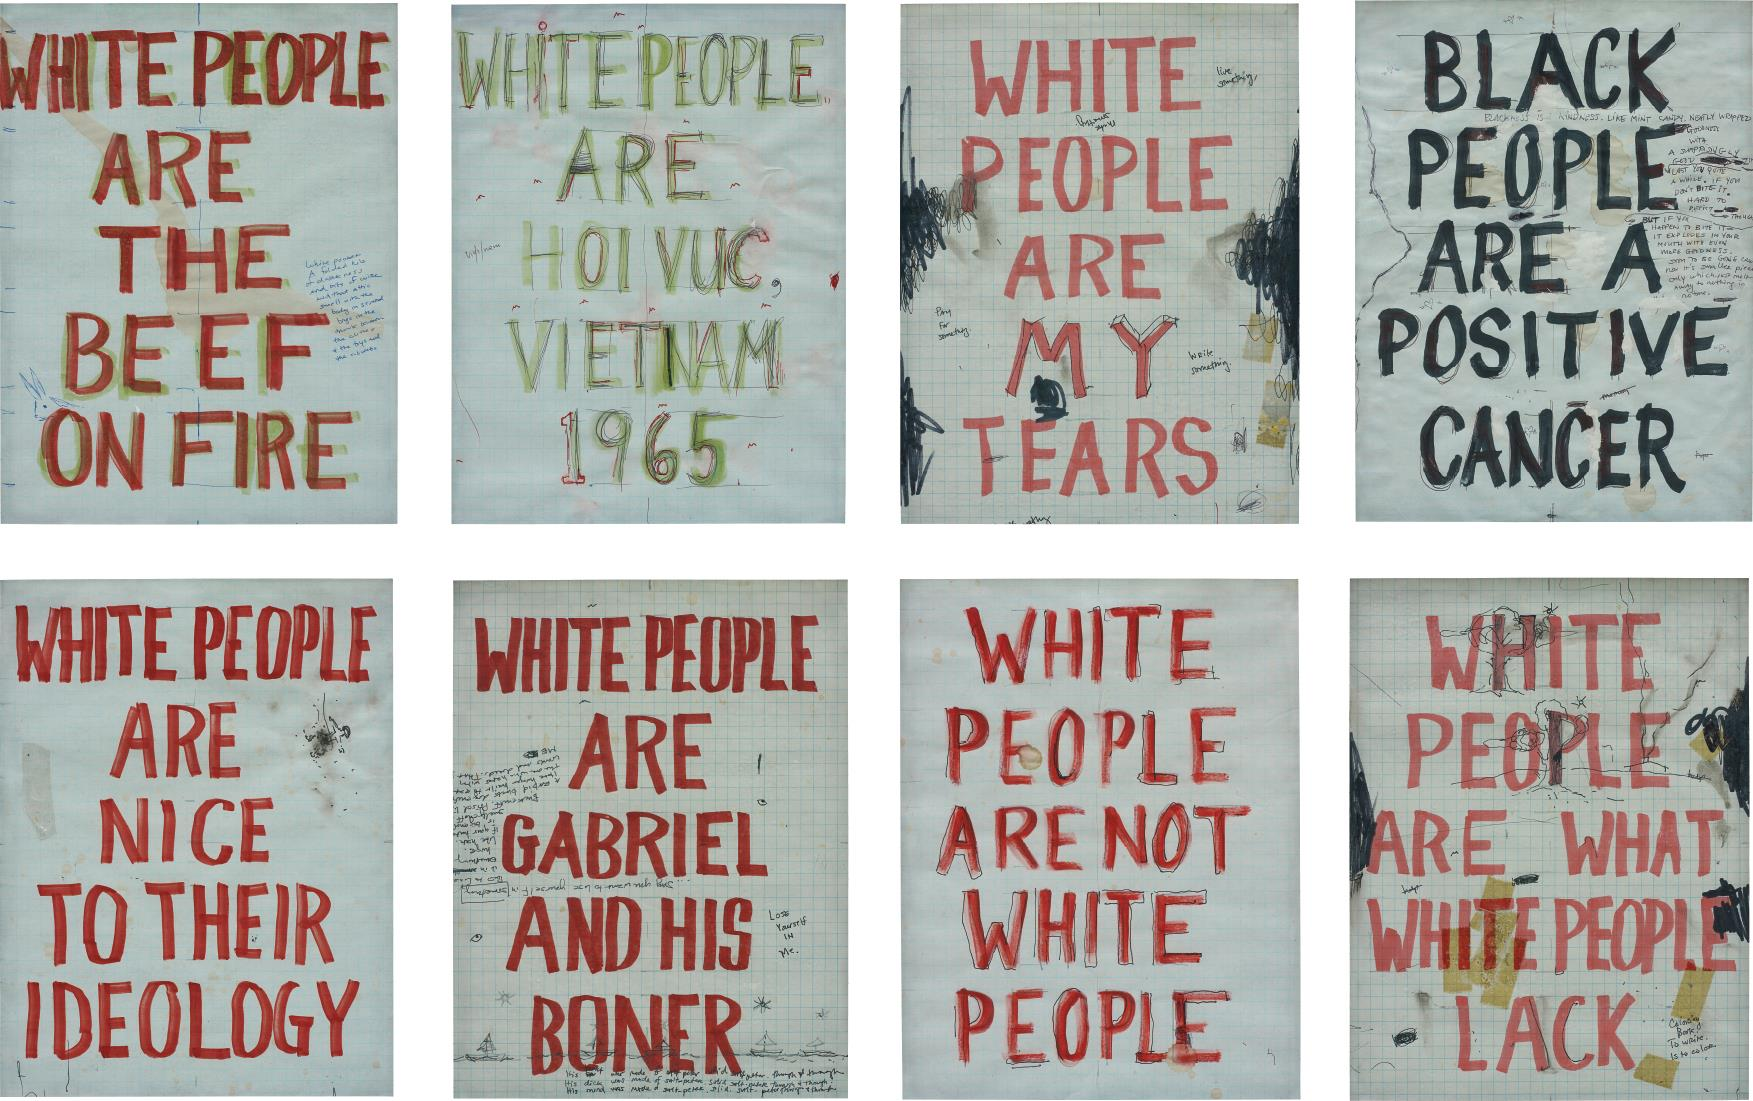 William Pope.L-Eight Works: (I) White People Are The Beef Of The Fire; (Ii) White People Are Hoi Vuc Vietnam 1965; (Iii) White People Are My Tears; (Iv) Black People Are A Positive Cancer; (V) White People Are Nice To Their Ideology; (Vi) White People Are Gabriel And His Boner; (Vii) White People Are Not White People; (Viii) White People Are What White People Lack-2001